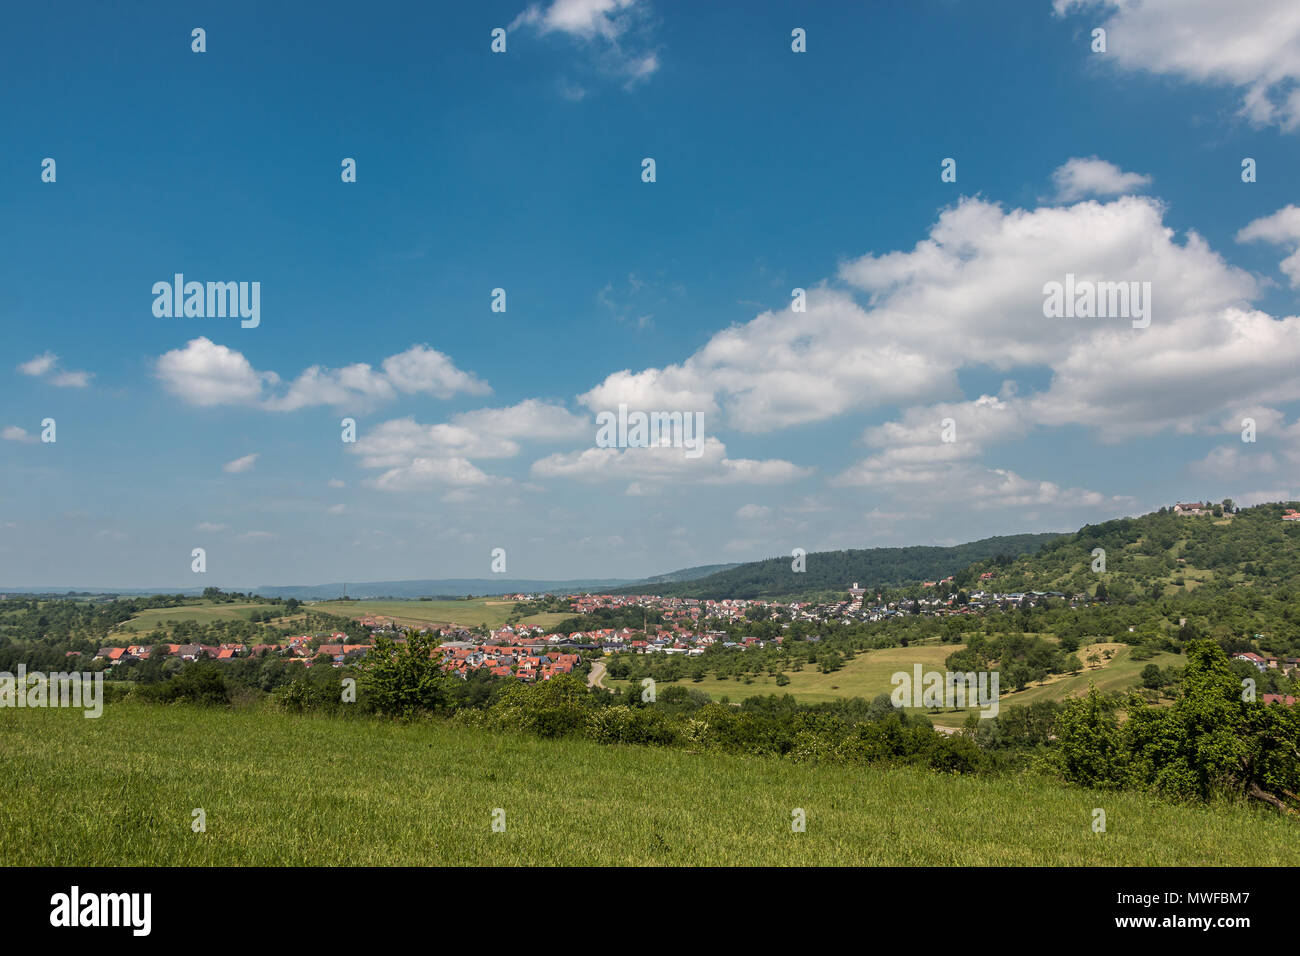 Little village in the middle of the german countryside with forests, fields and meadows - Stock Image